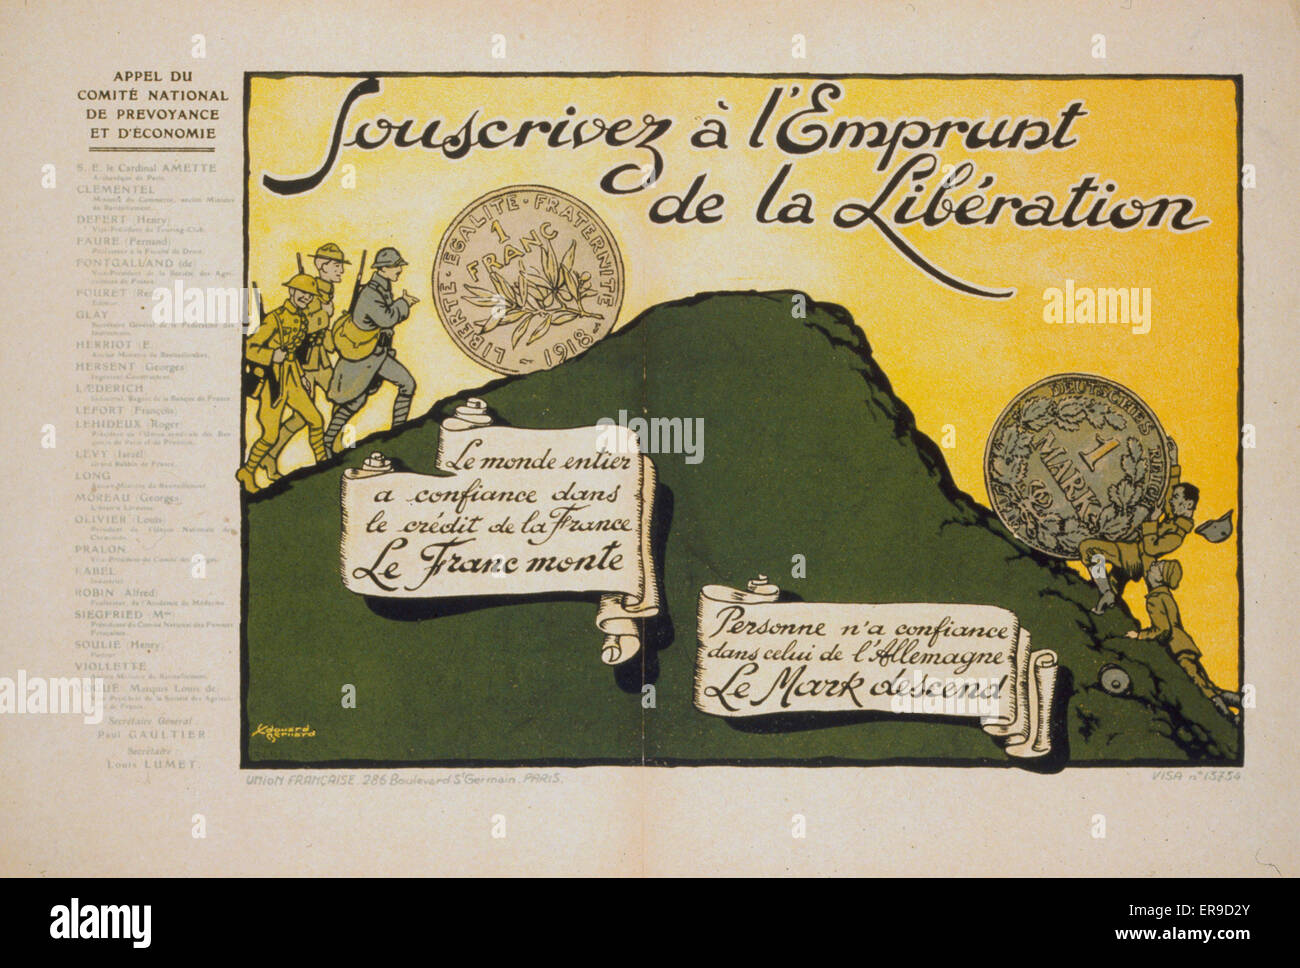 Souscrivez a l'Emprunt de la Liberation. The franc and the mark pushed uphill by French and German soldiers, - Stock Image